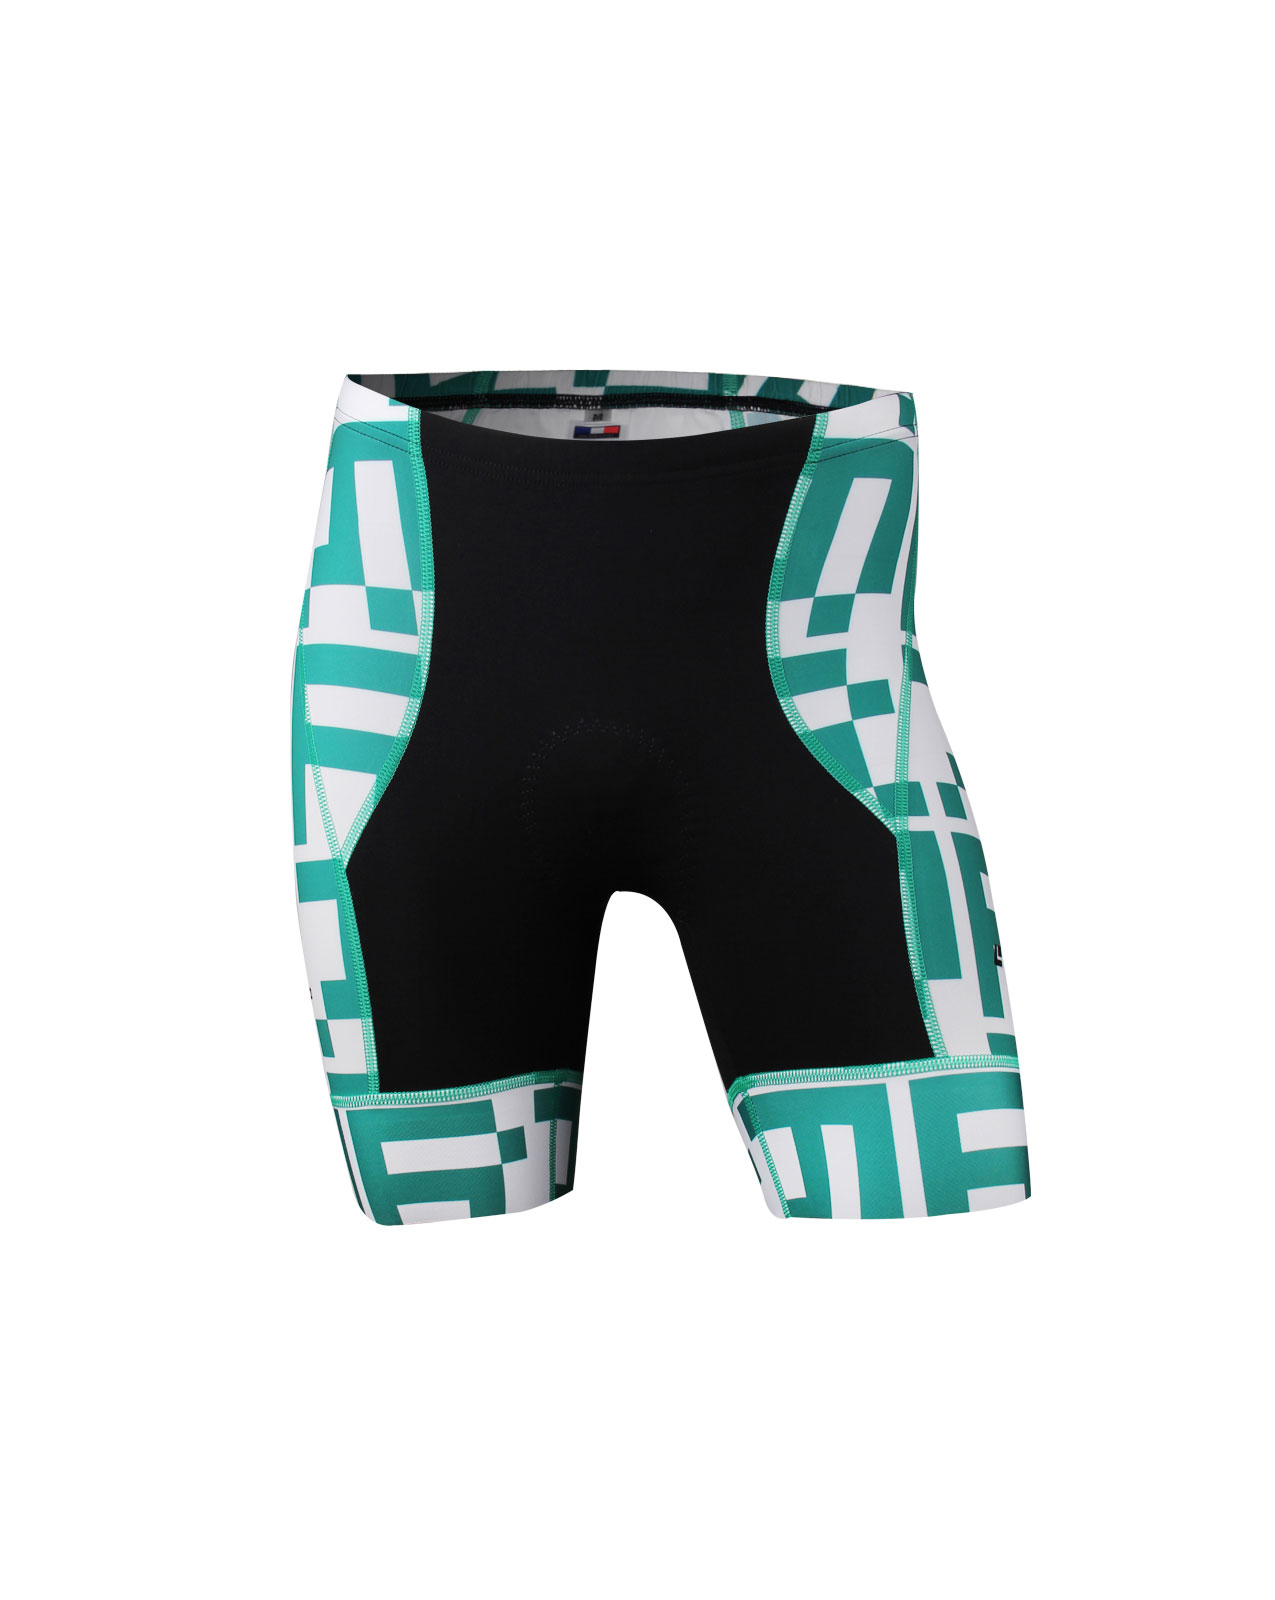 French AQUATECH Tri Shorts